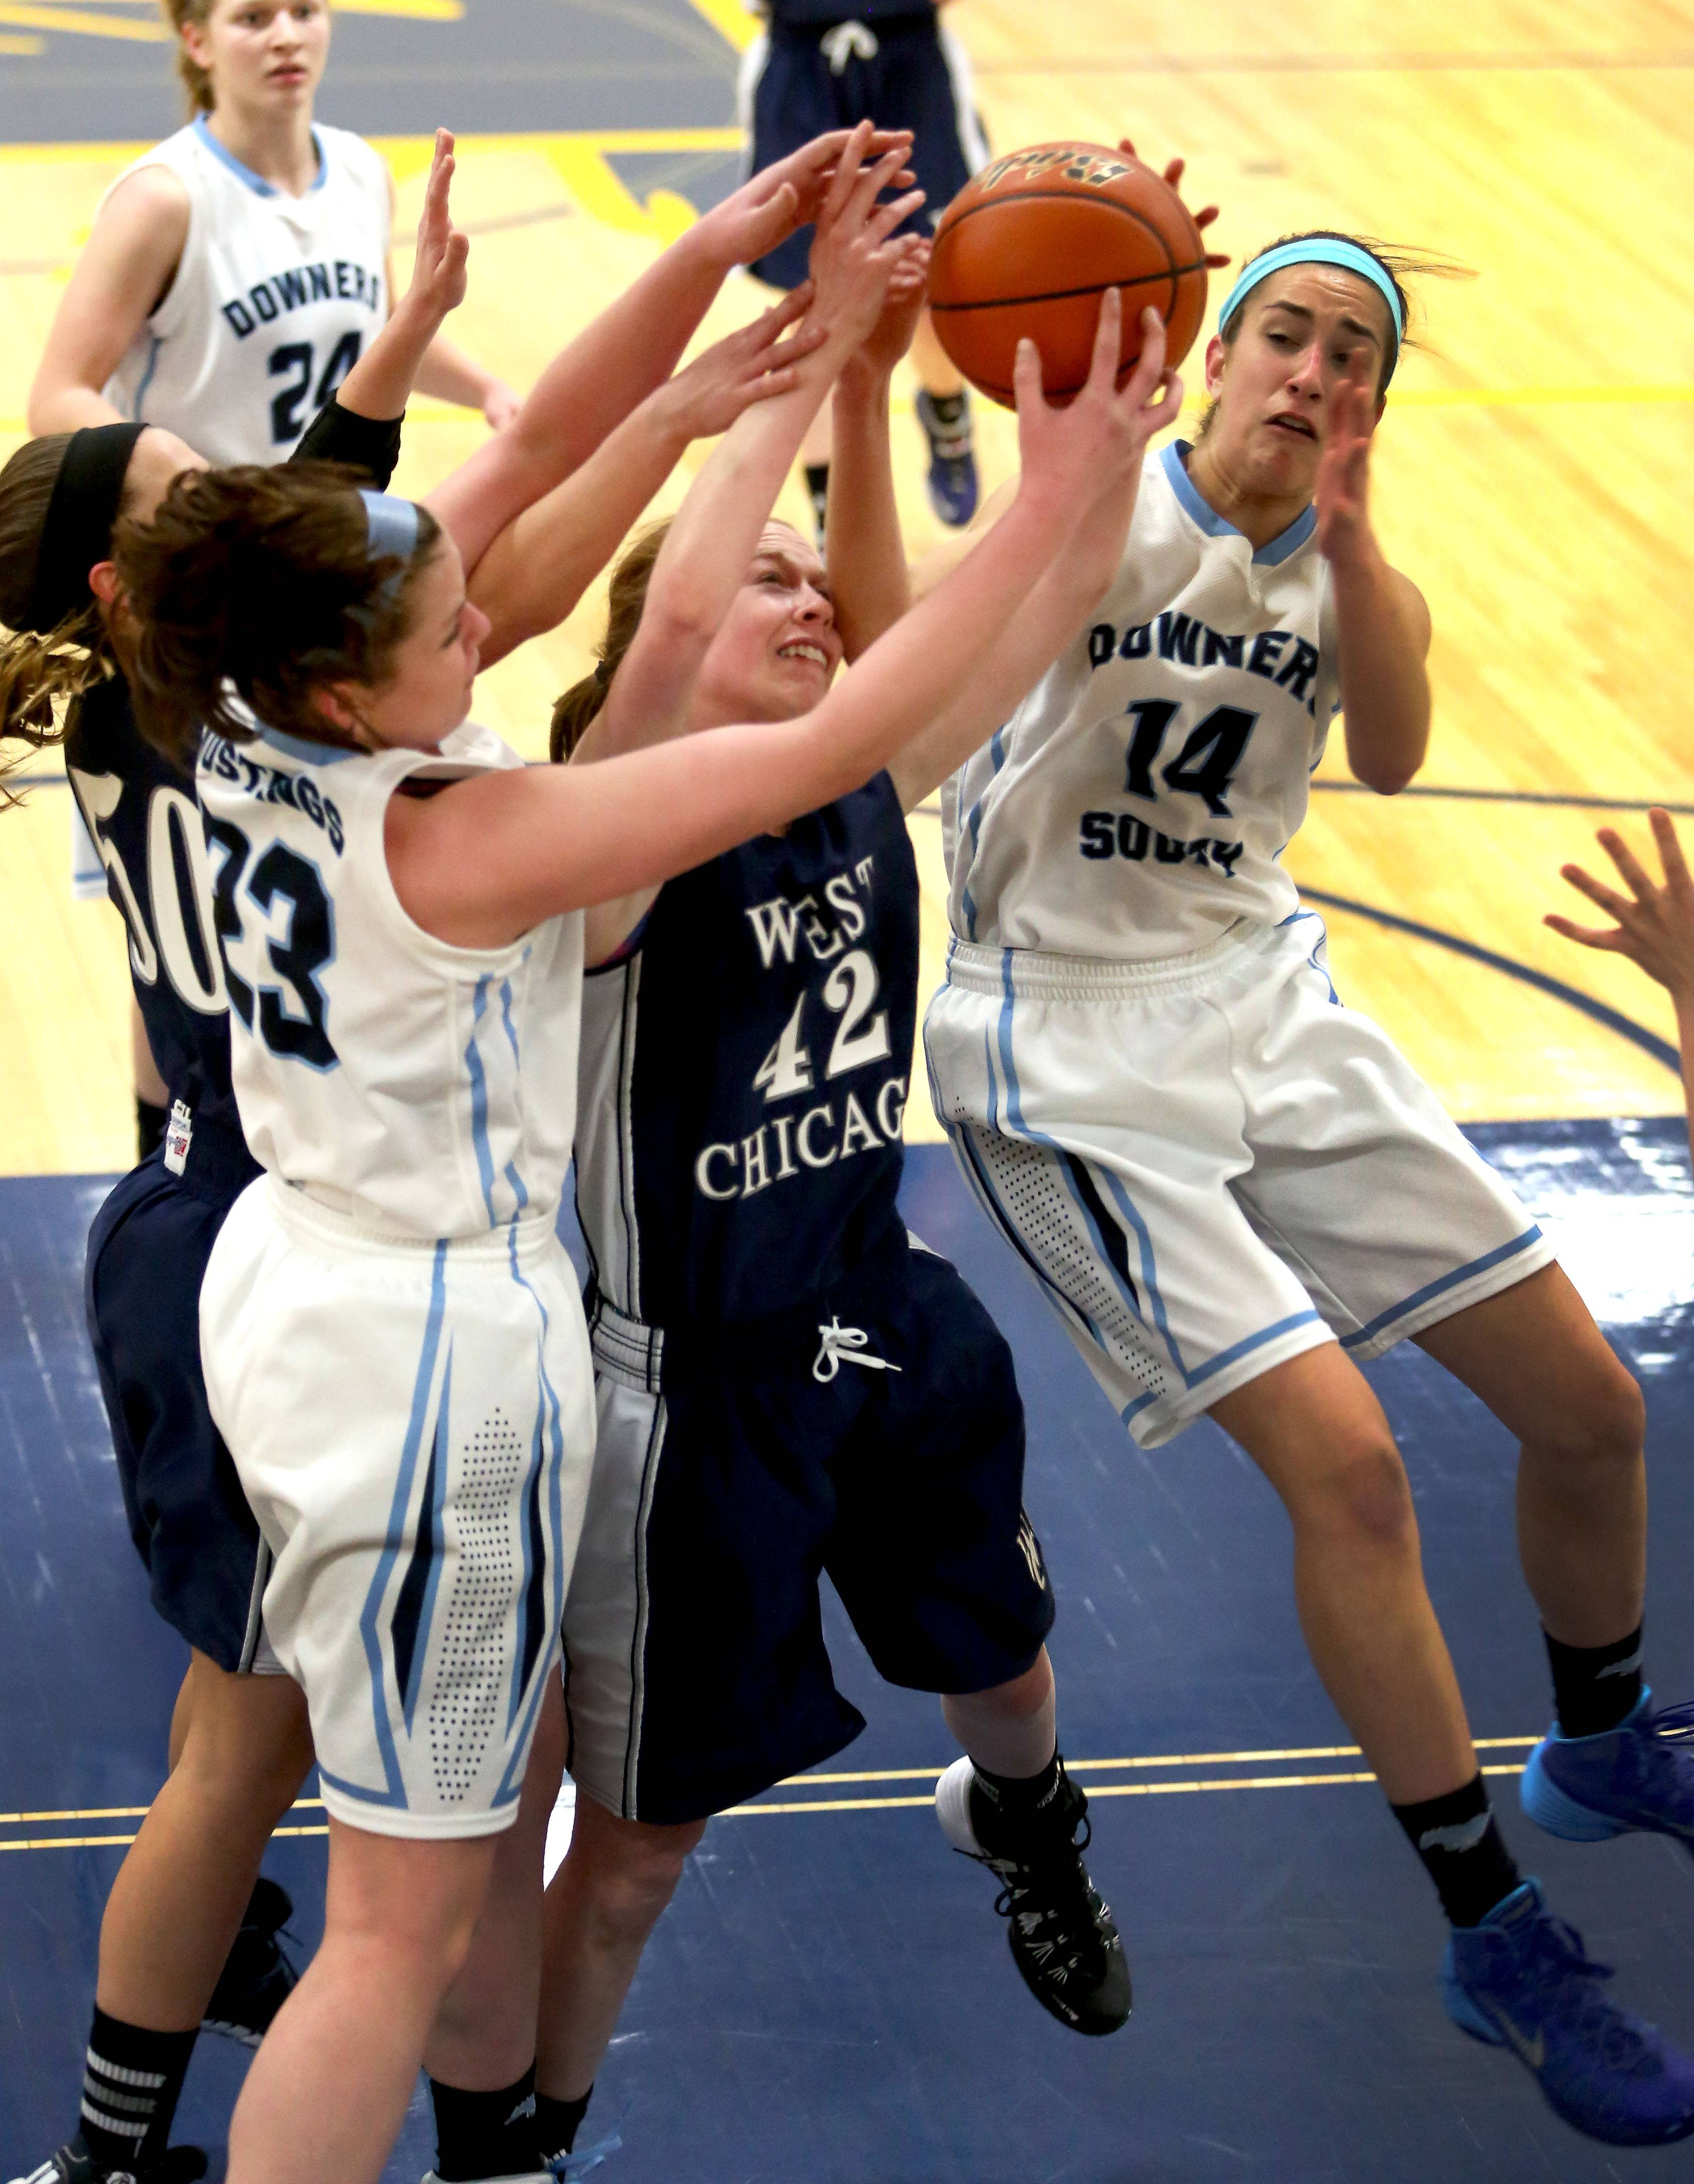 West Chicago's Madeline Earls, center, gets tangled with Noicole Landrosh, left and Claire Hardy, right, of Downers Grove South on a rebound.